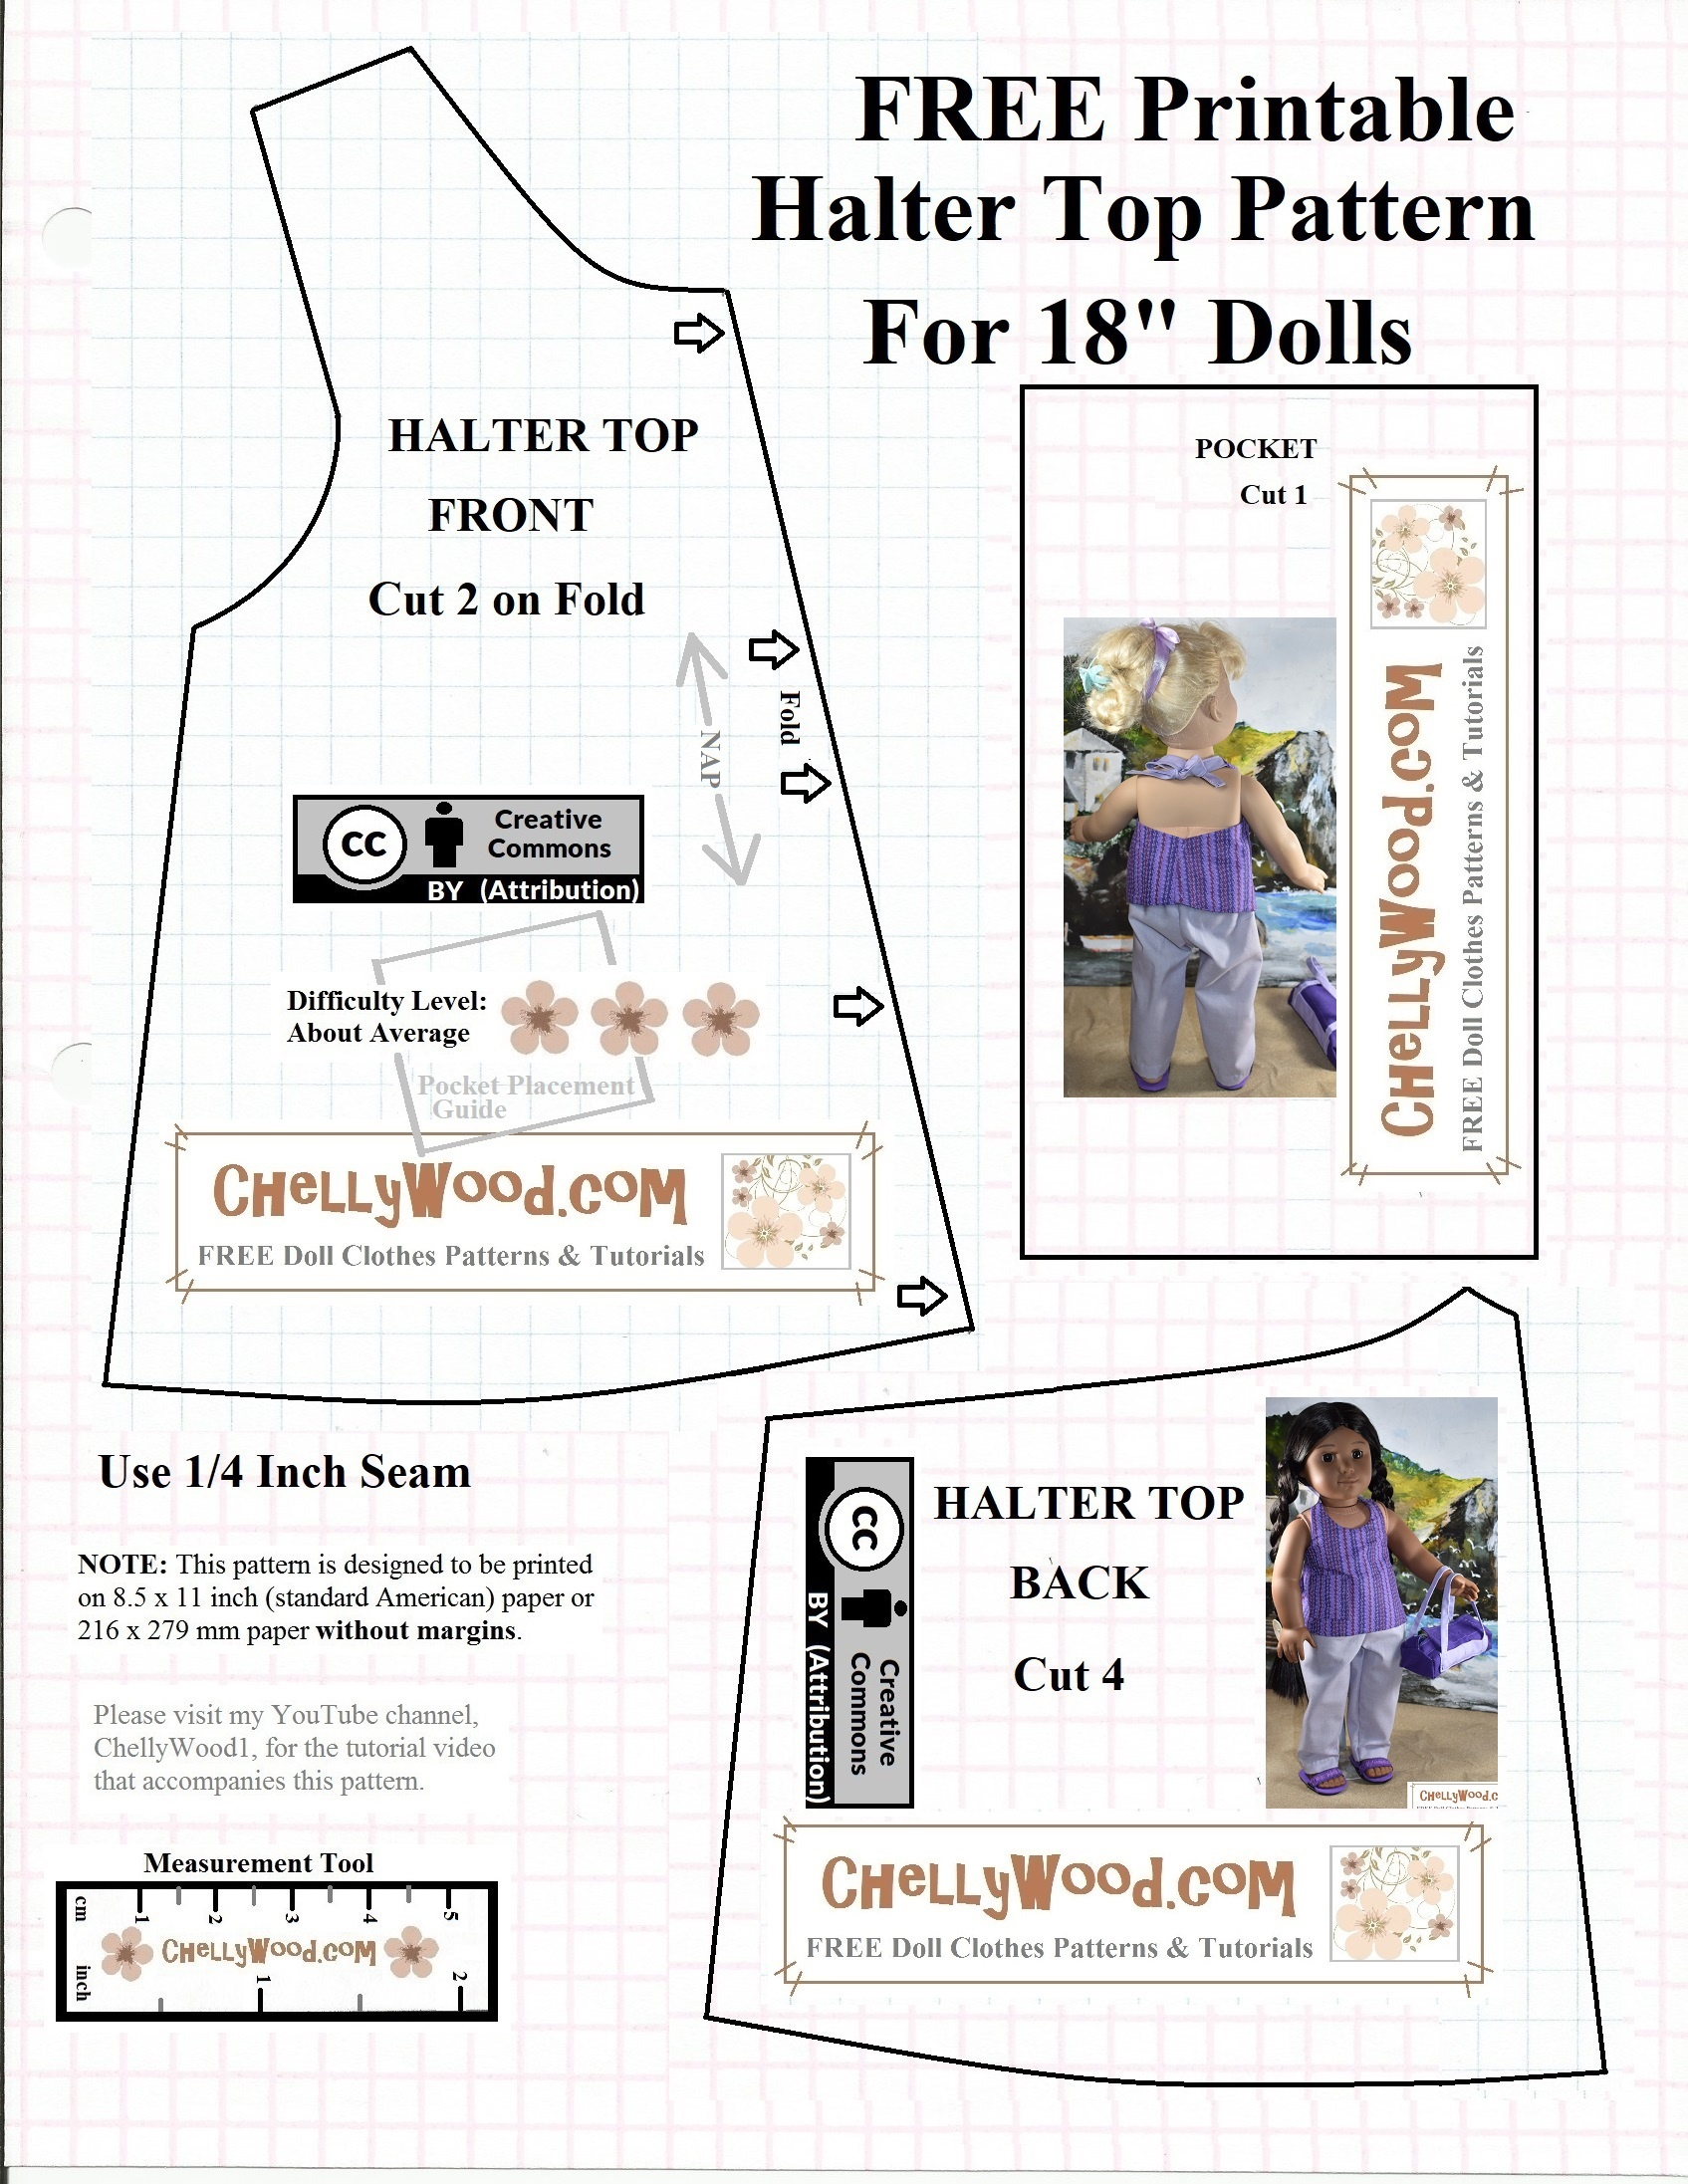 Free #agdoll Summer Shirt Pattern @ Chellywood #sewing 4#dolls - American Girl Clothes Patterns Free Printable